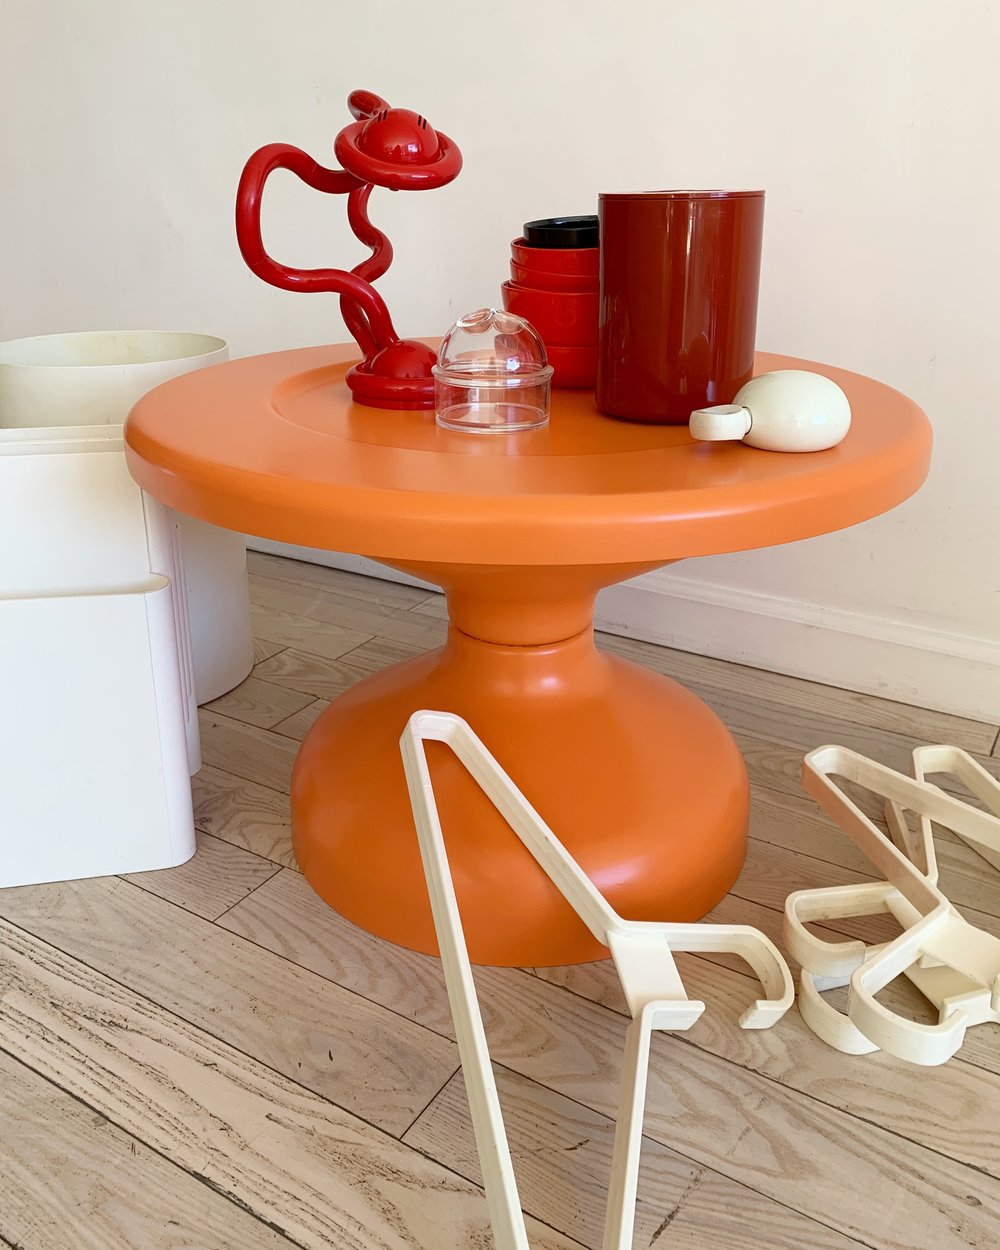 1960s Orange Rocchetto Table by A & P.G. Castiglioni for Kartell